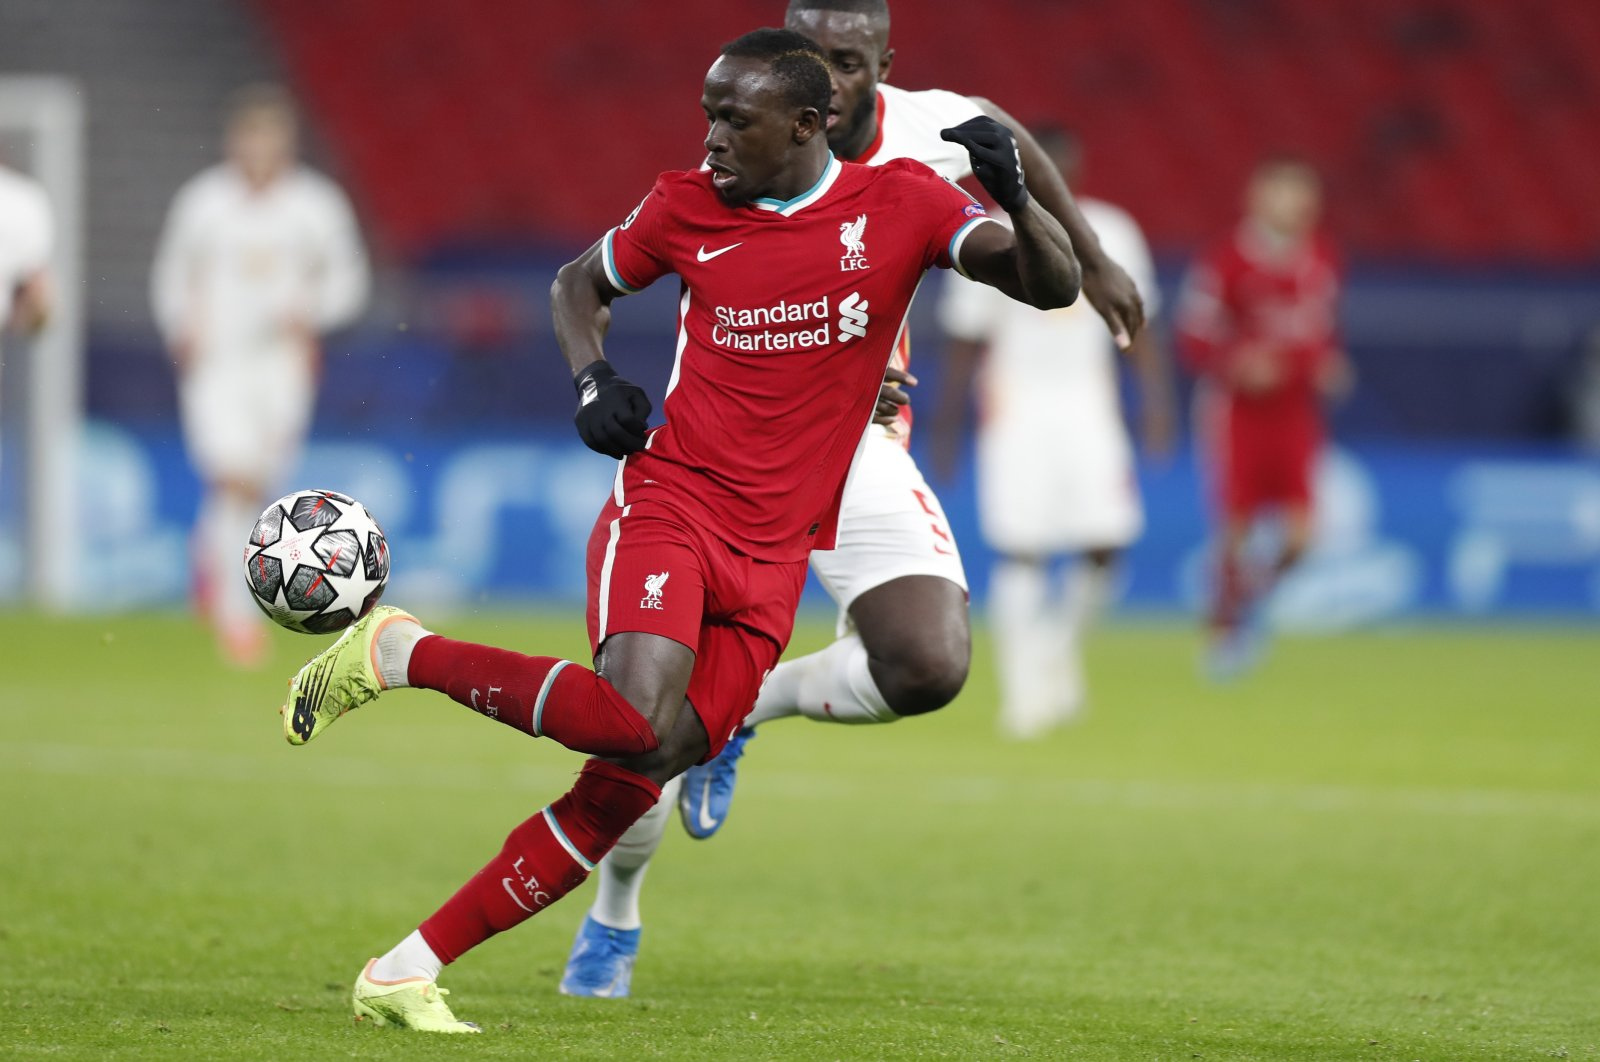 Liverpool's Sadio Mane in action against RB Leipzig during the Champions League round of 16, second leg match at the Puskas Arena, Budapest, Hungary, March 10, 2021. (AP Photo)